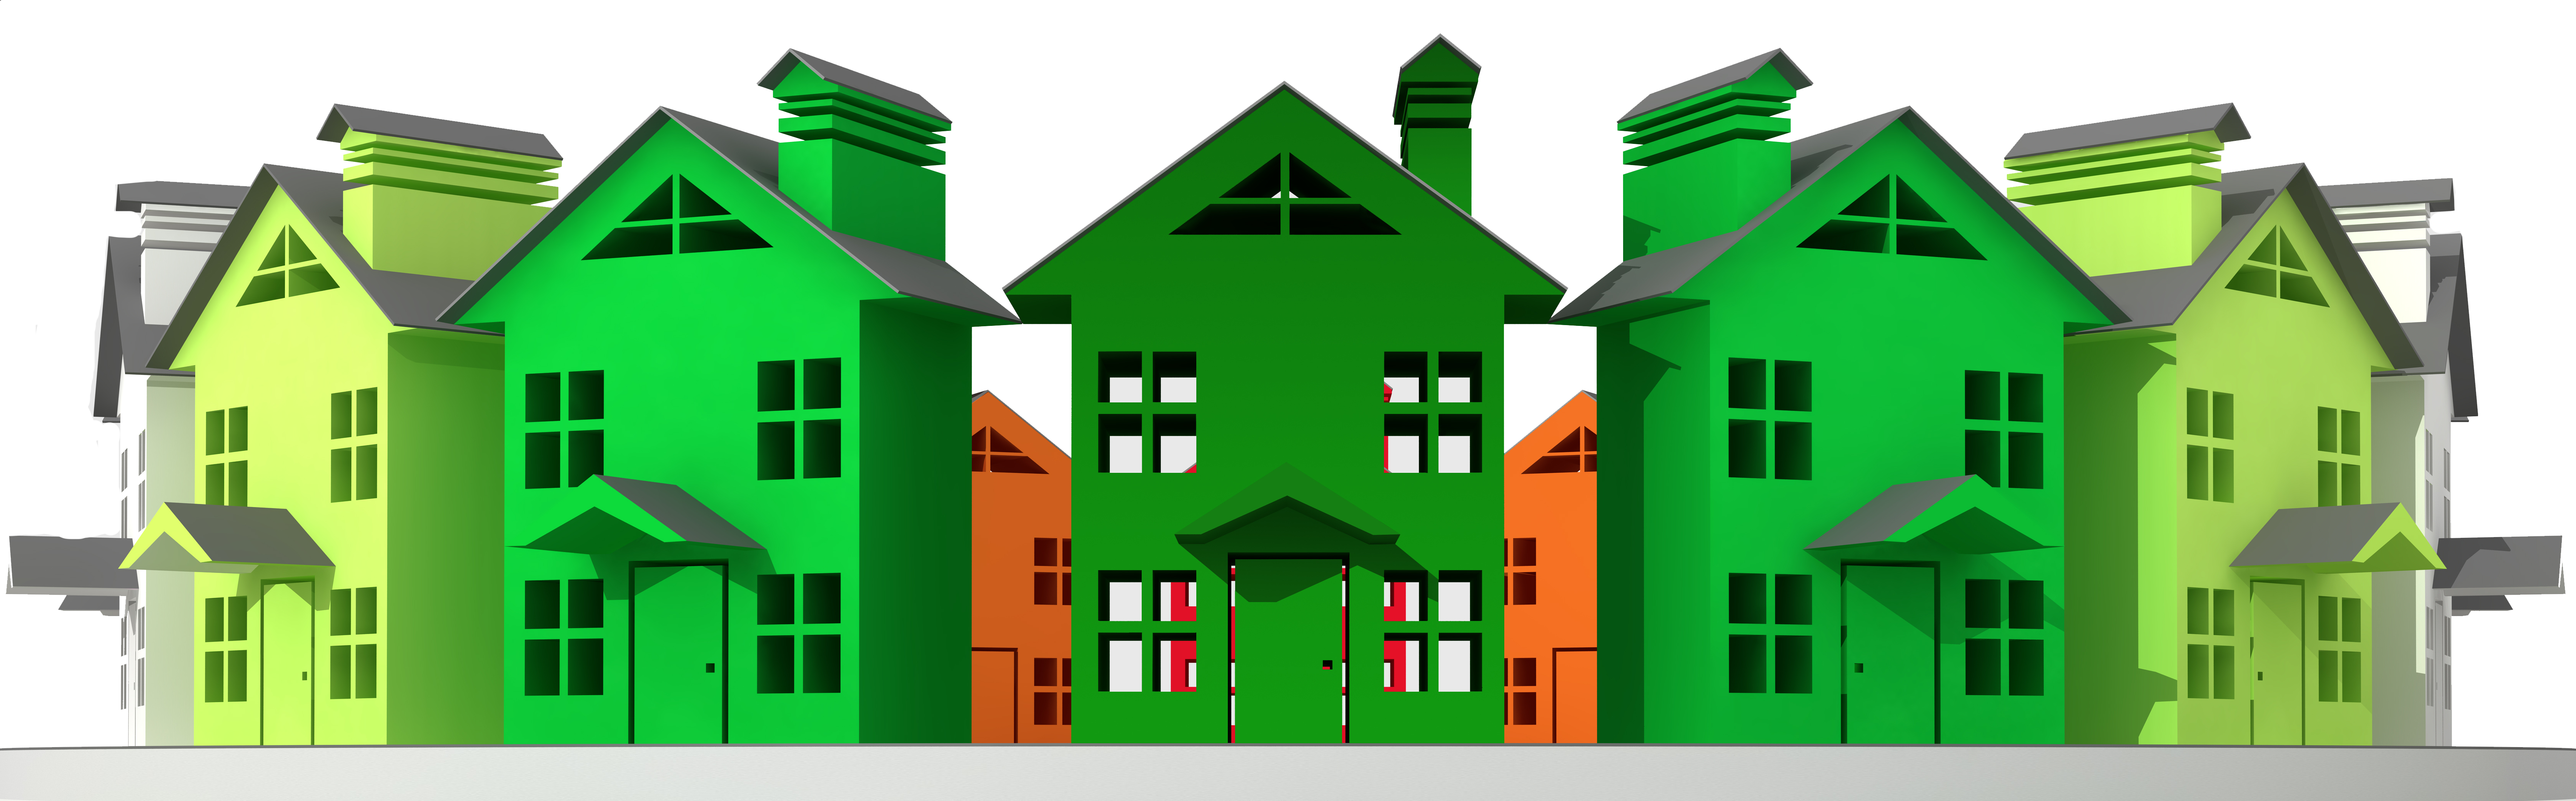 Family in a house clipart clip royalty free download Multi-Family Construction Request clip royalty free download